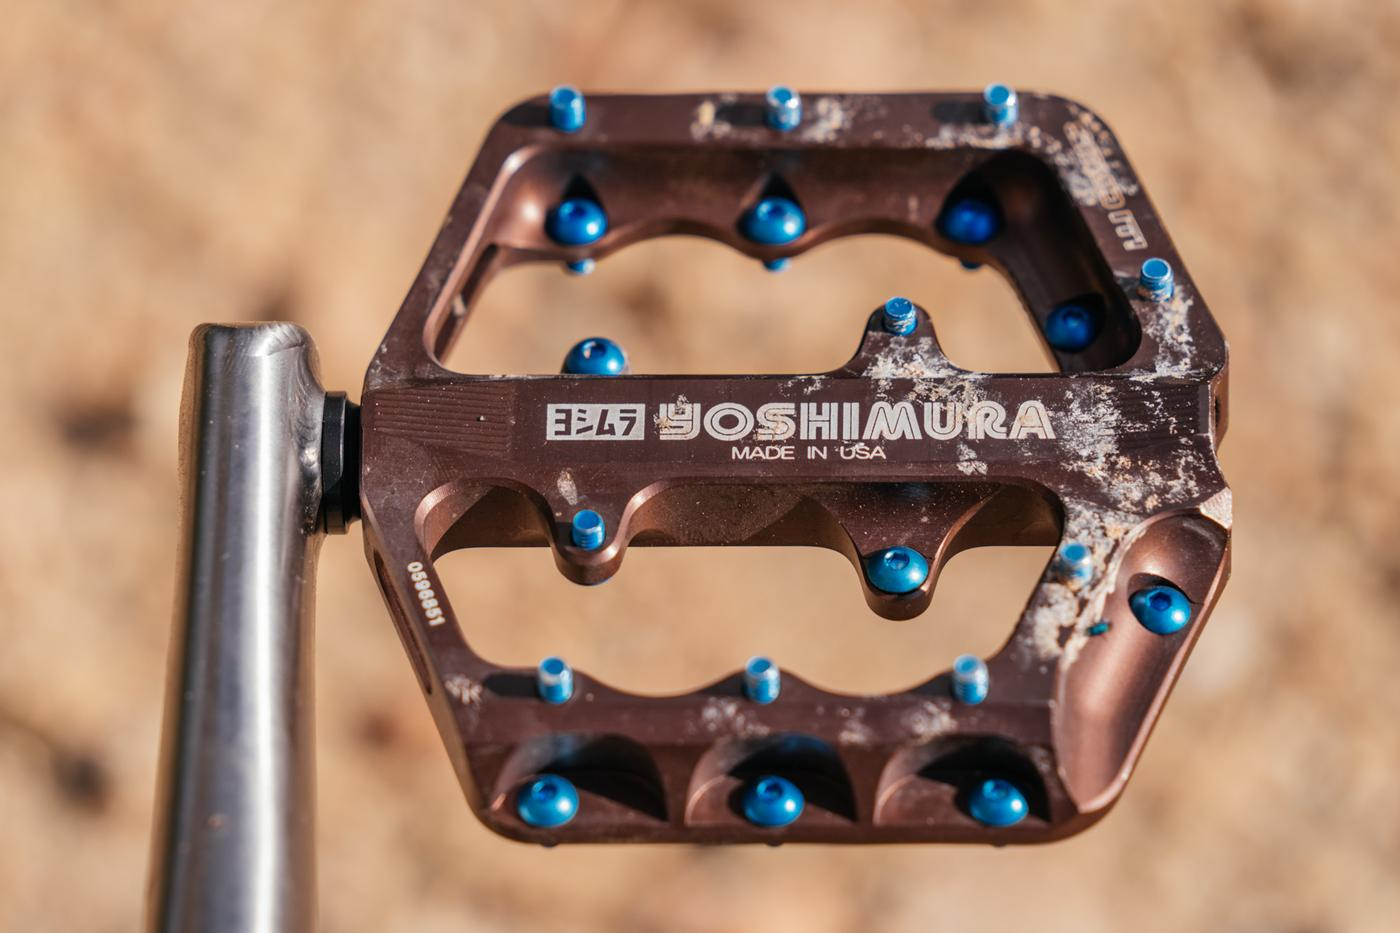 I Can't Get Enough of These Yoshimura Chilao MTB Pedals